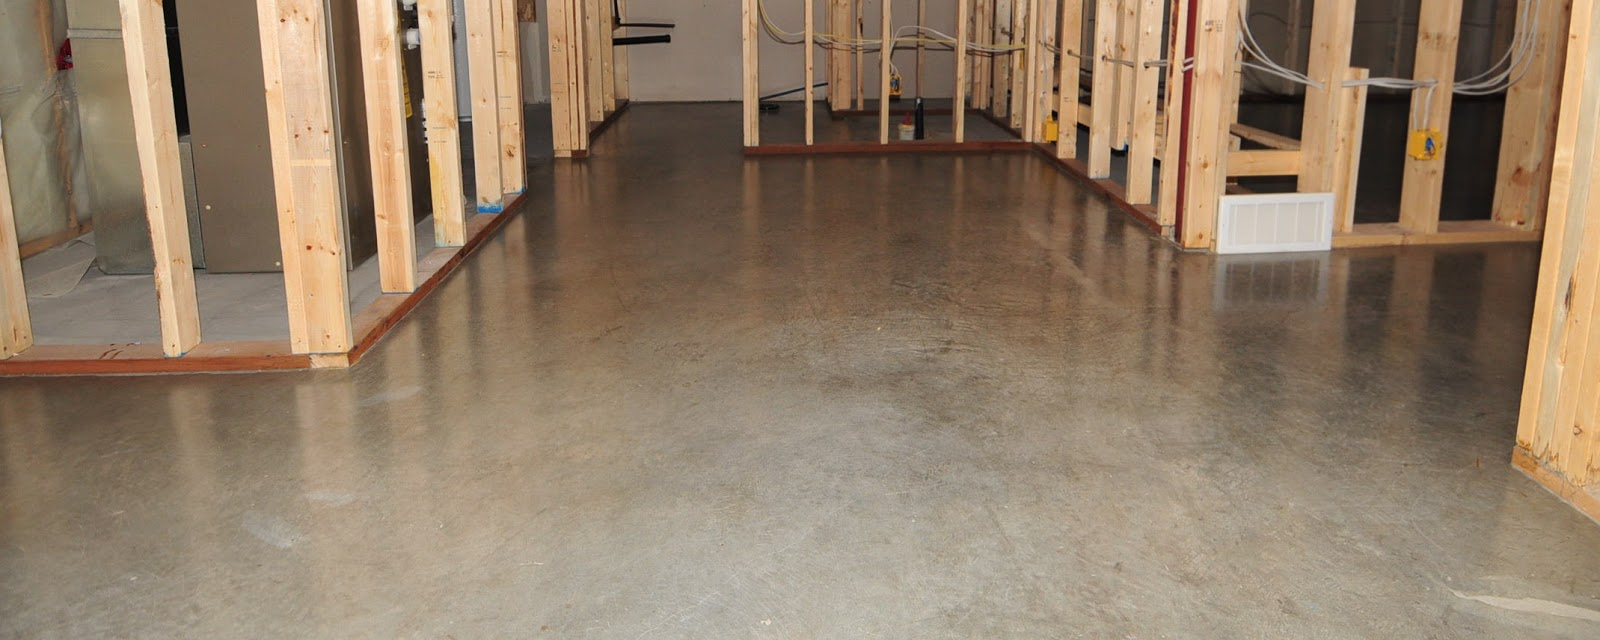 Finished Concrete Floors. Staining And Finishing Concrete Floors ...